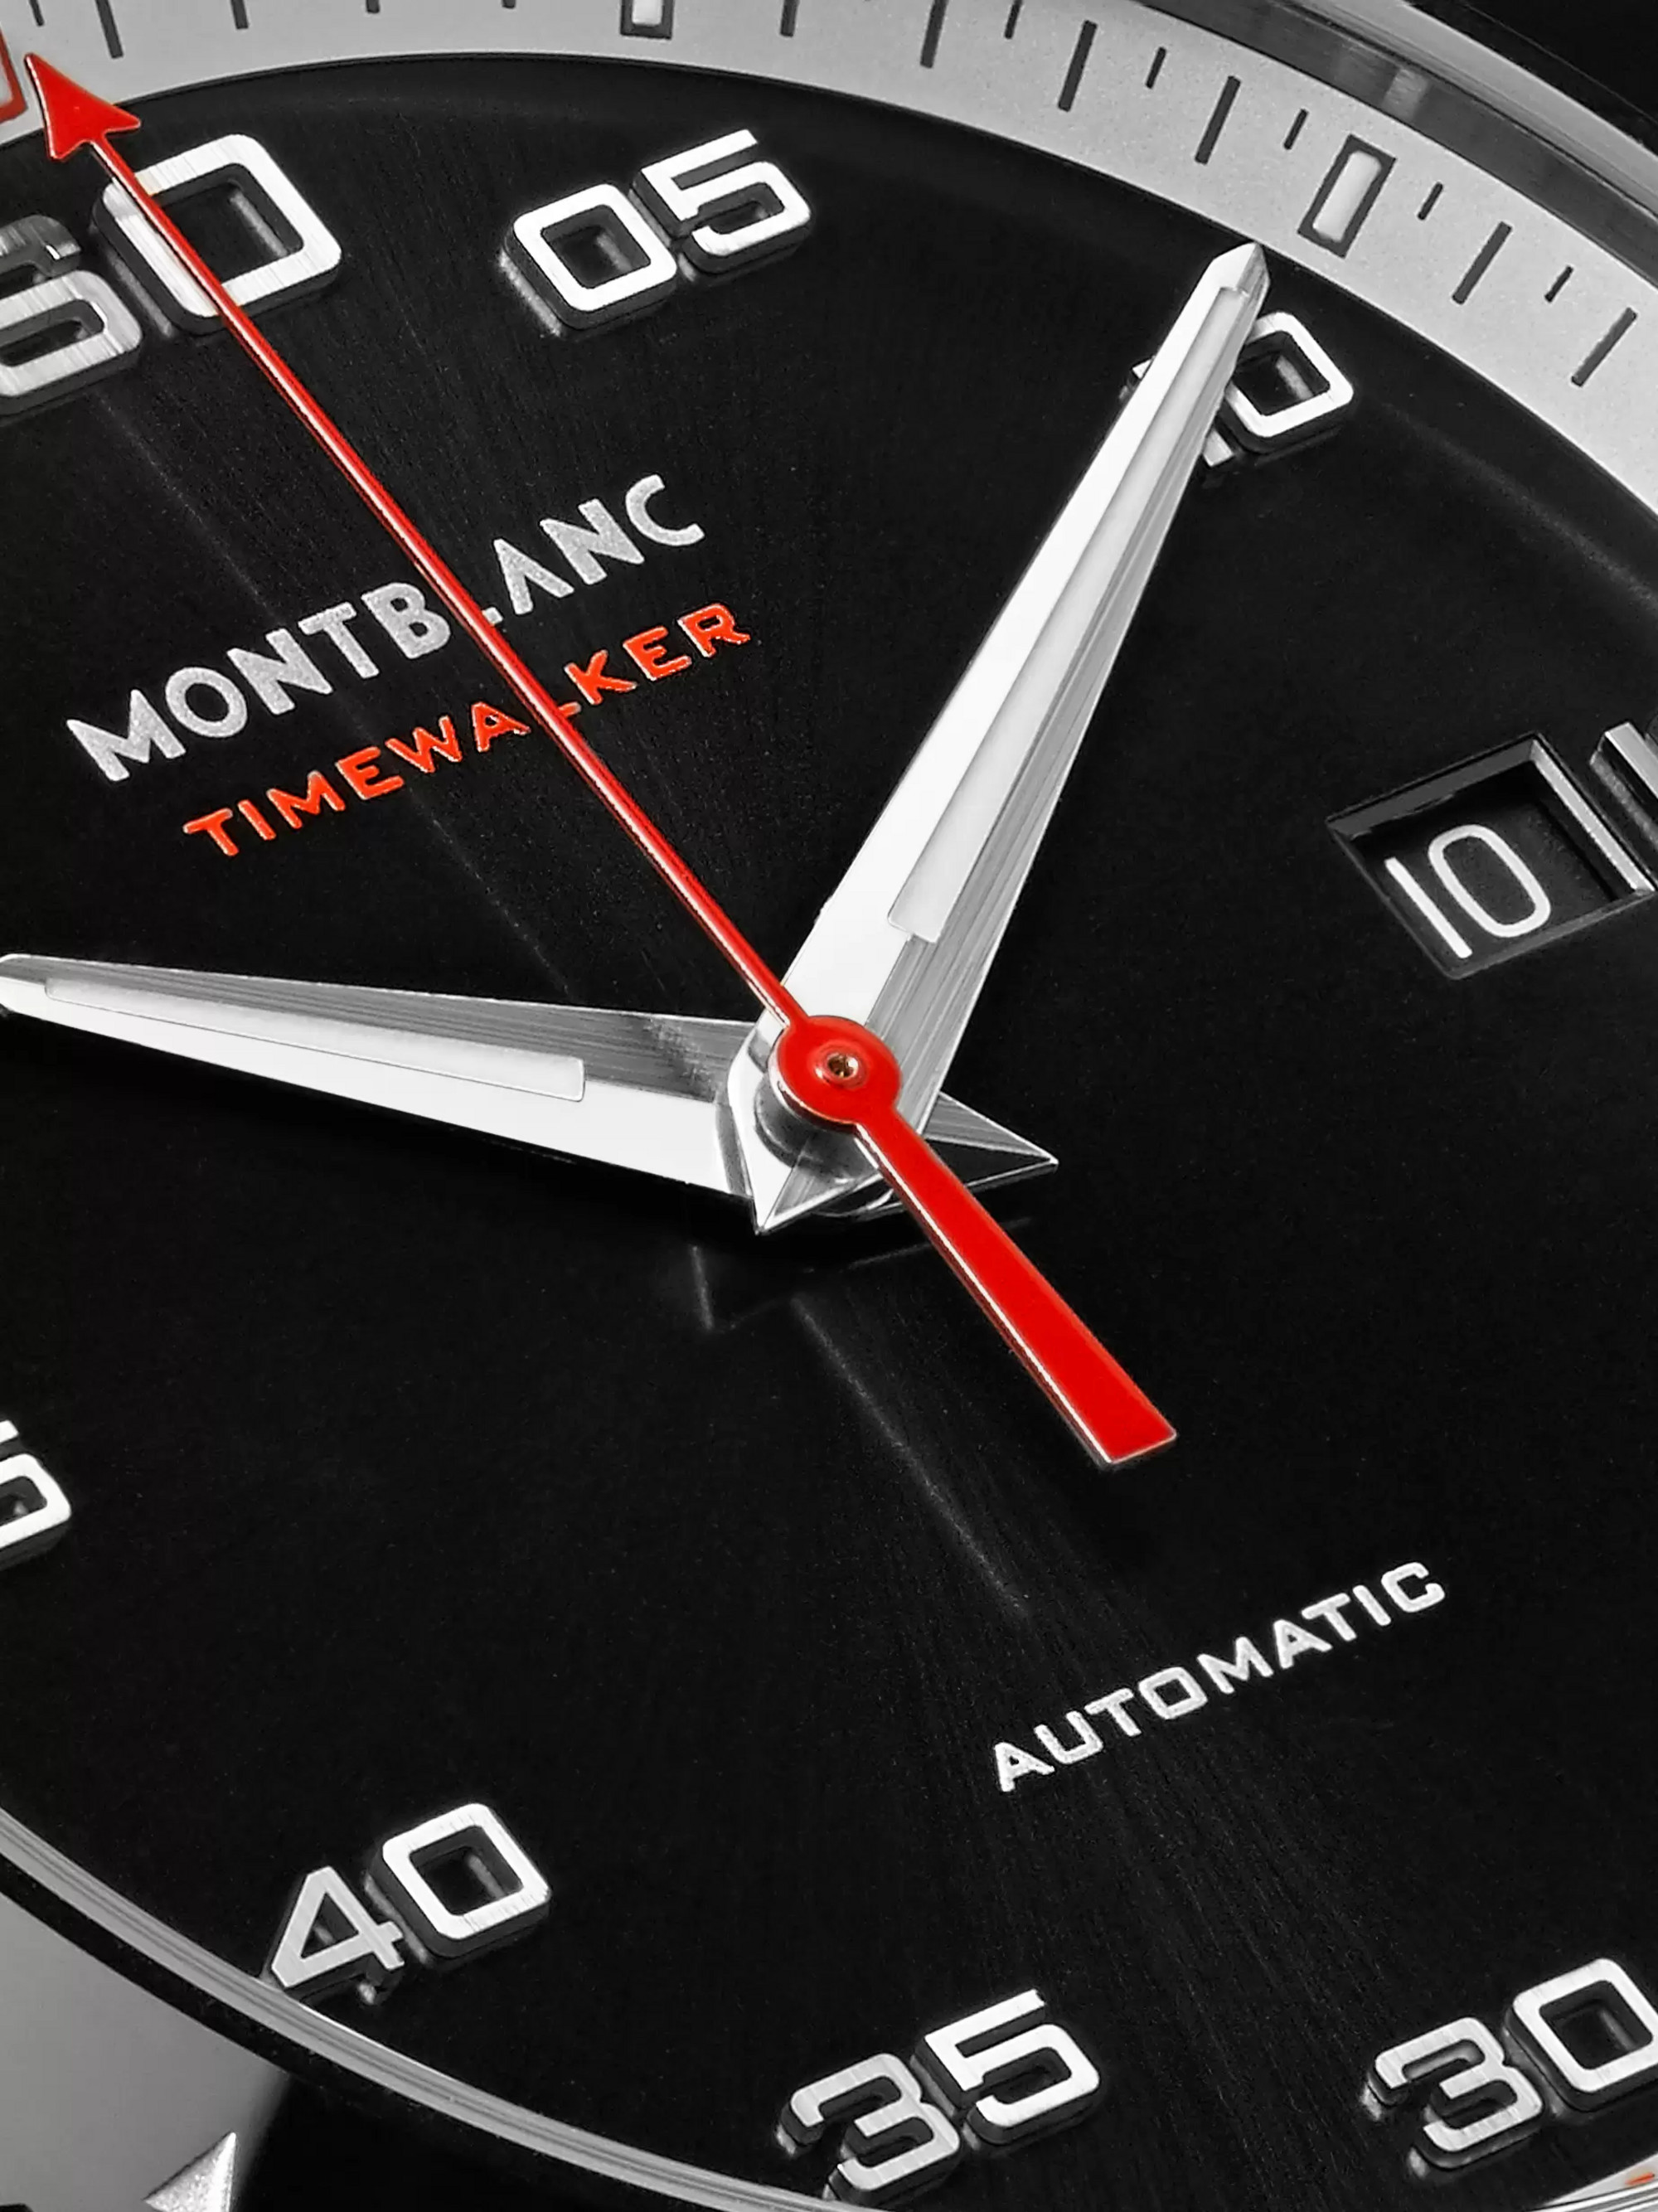 Montblanc TimeWalker Date Automatic 41mm Stainless Steel, Ceramic and Rubber Watch